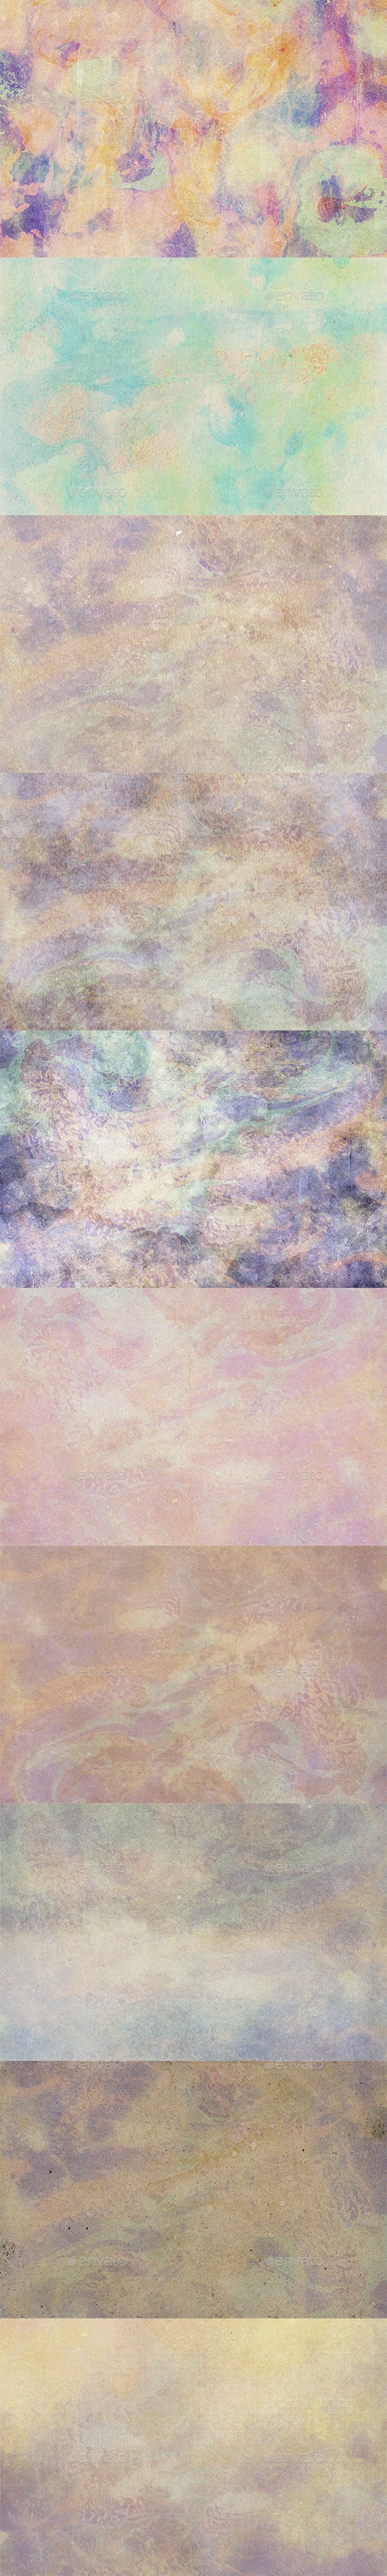 10 Old Washed Watercolor Paper Textures